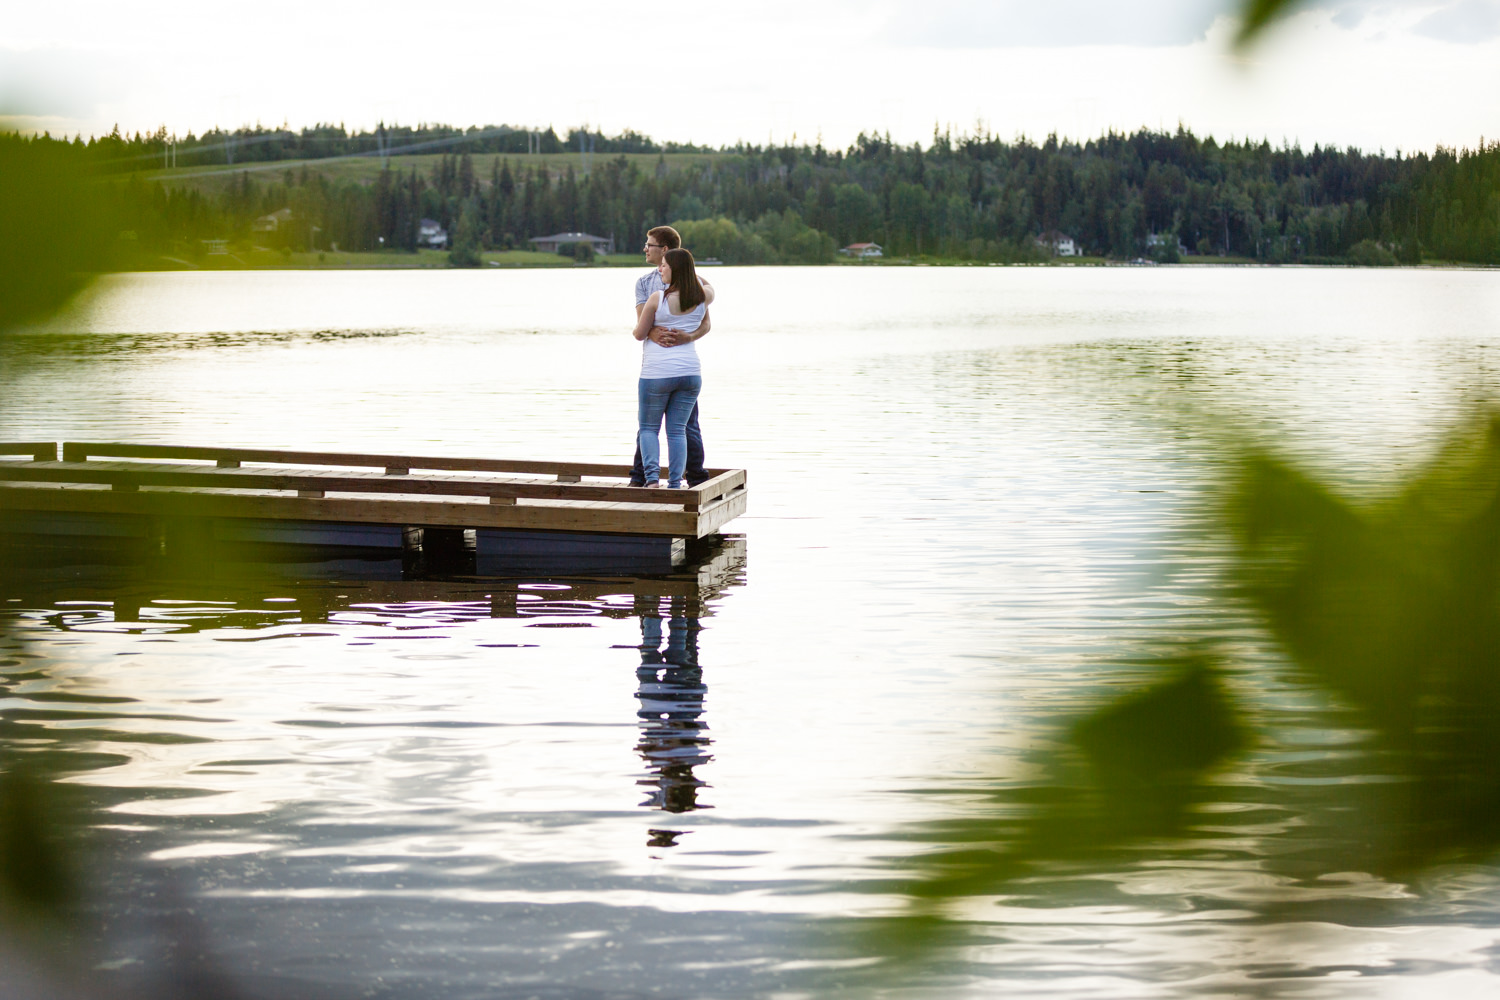 quesnel-bc-ten-mile-lake-maternity-session-quesnel-maternity-photographer-kelowna-maternity-photographers-okanagan-meternity-photographer (29 of 32).jpg